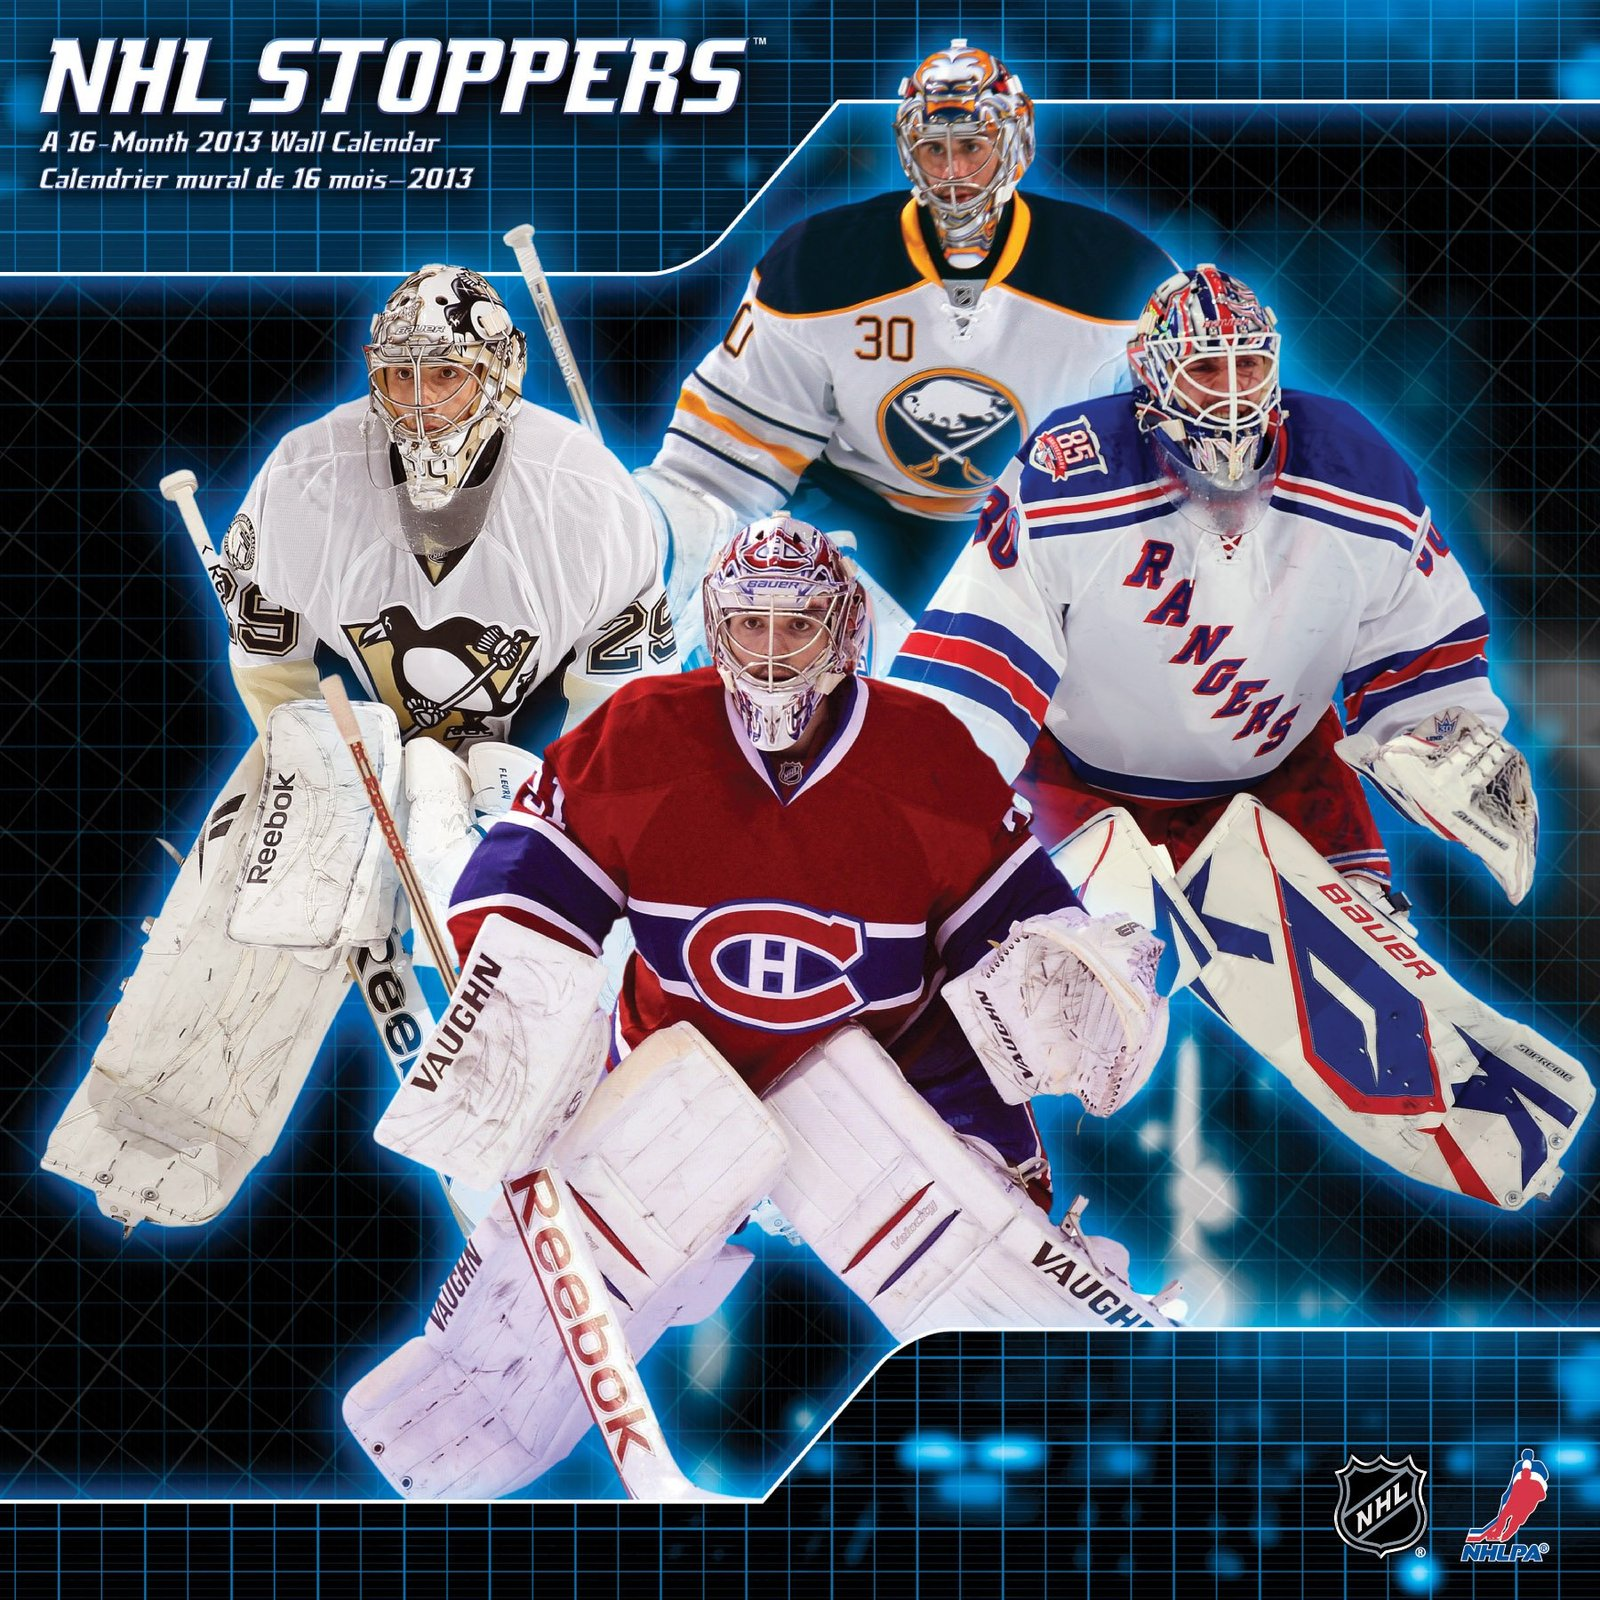 NHL Stoppers 2013 Wall Calendar [Sep 01, 2012] DateWorks